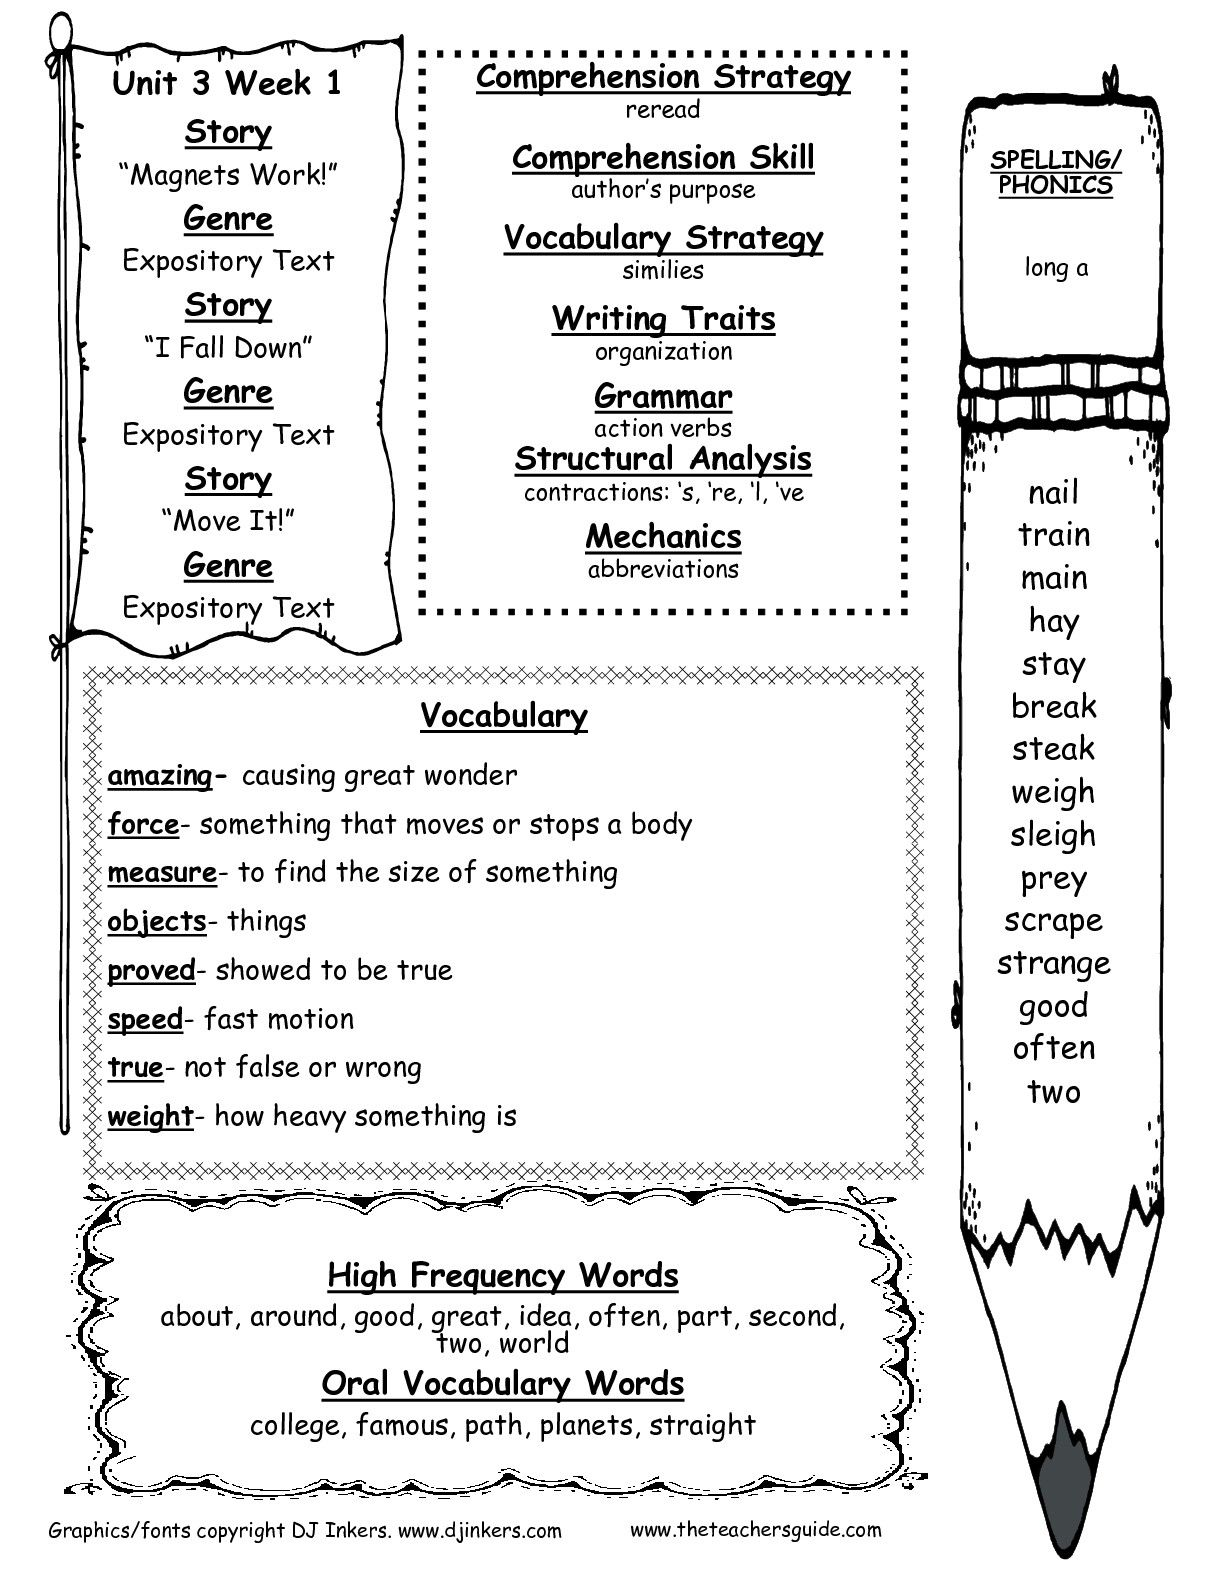 Worksheets Second Grade Phonics Worksheets the teachers guide free worksheets smartboard templates and second grade wonders unit six week one printouts weekly outline